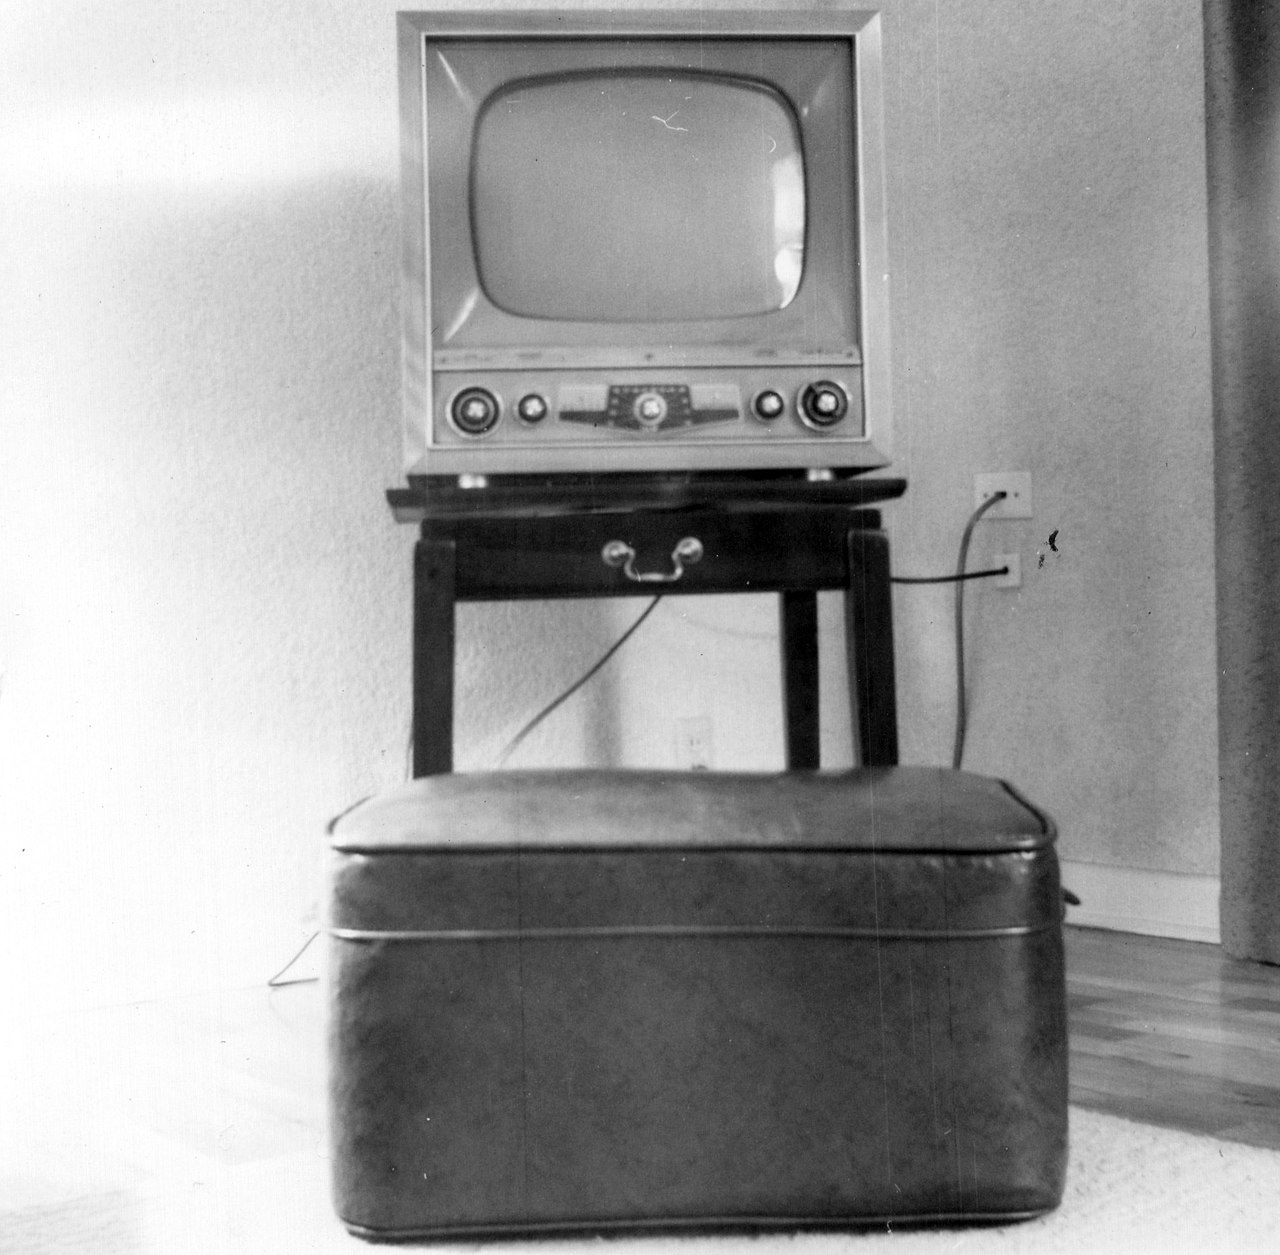 1280px-Television_set_from_the_early_1950s.jpg